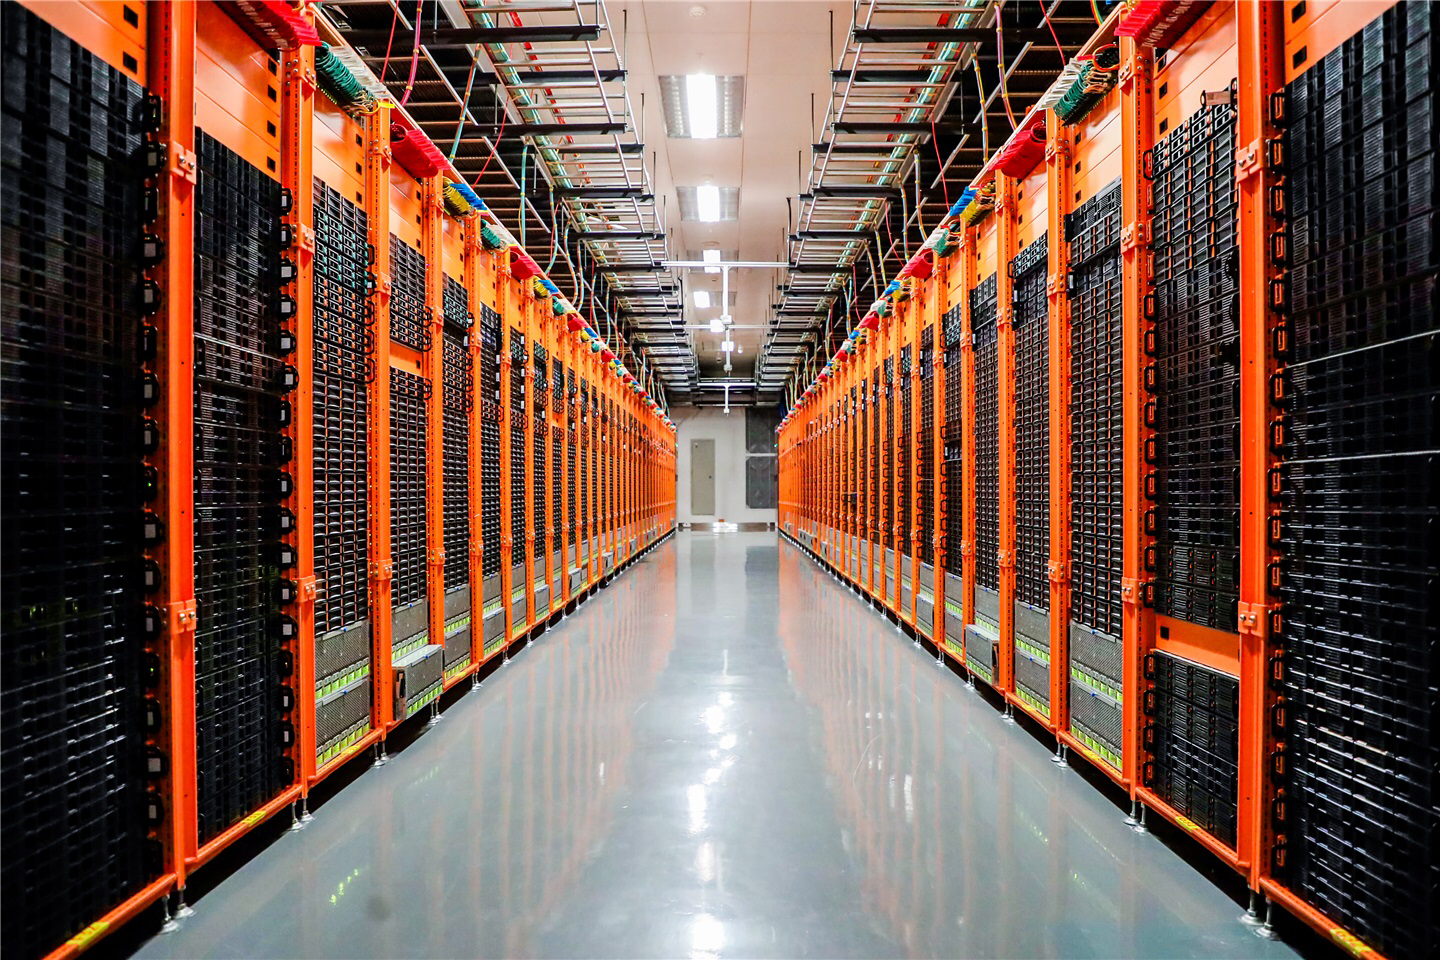 Alibaba Cloud completes three new super data centers, will add over a million servers-cnTechPost